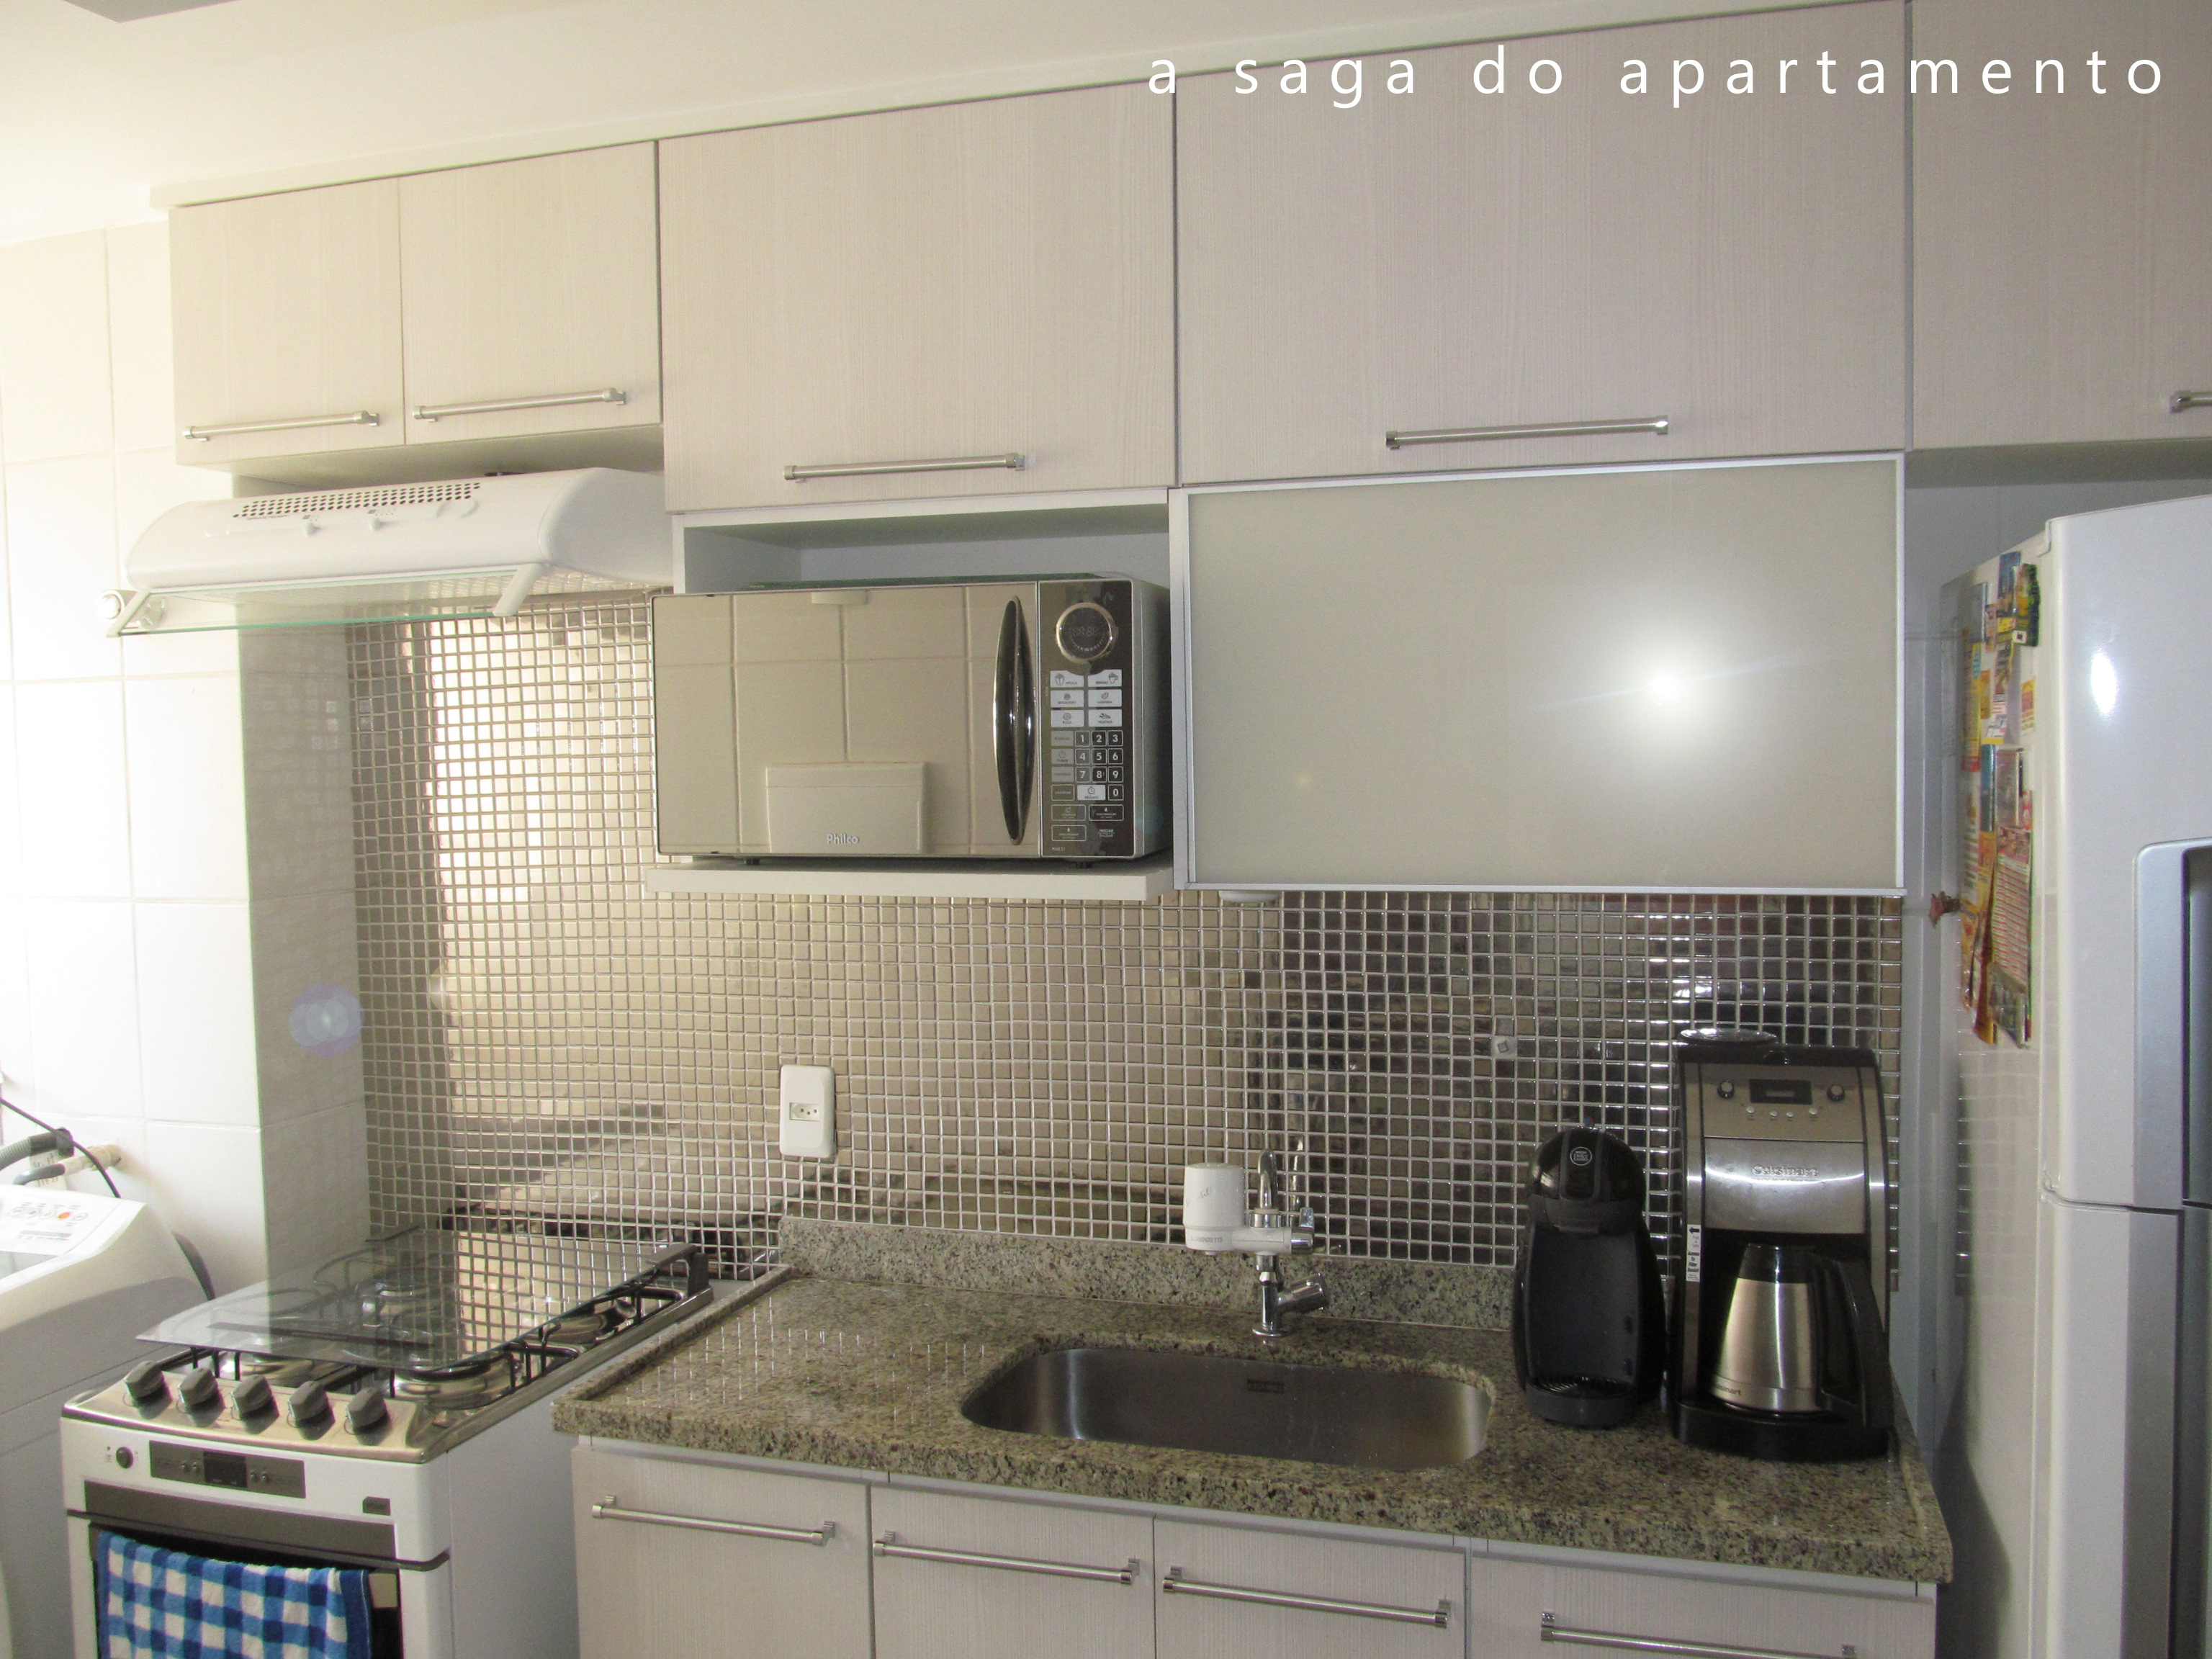 saga do apartamento …just a simple home for two  #364866 3072x2304 Banheiro Azulejo Metade